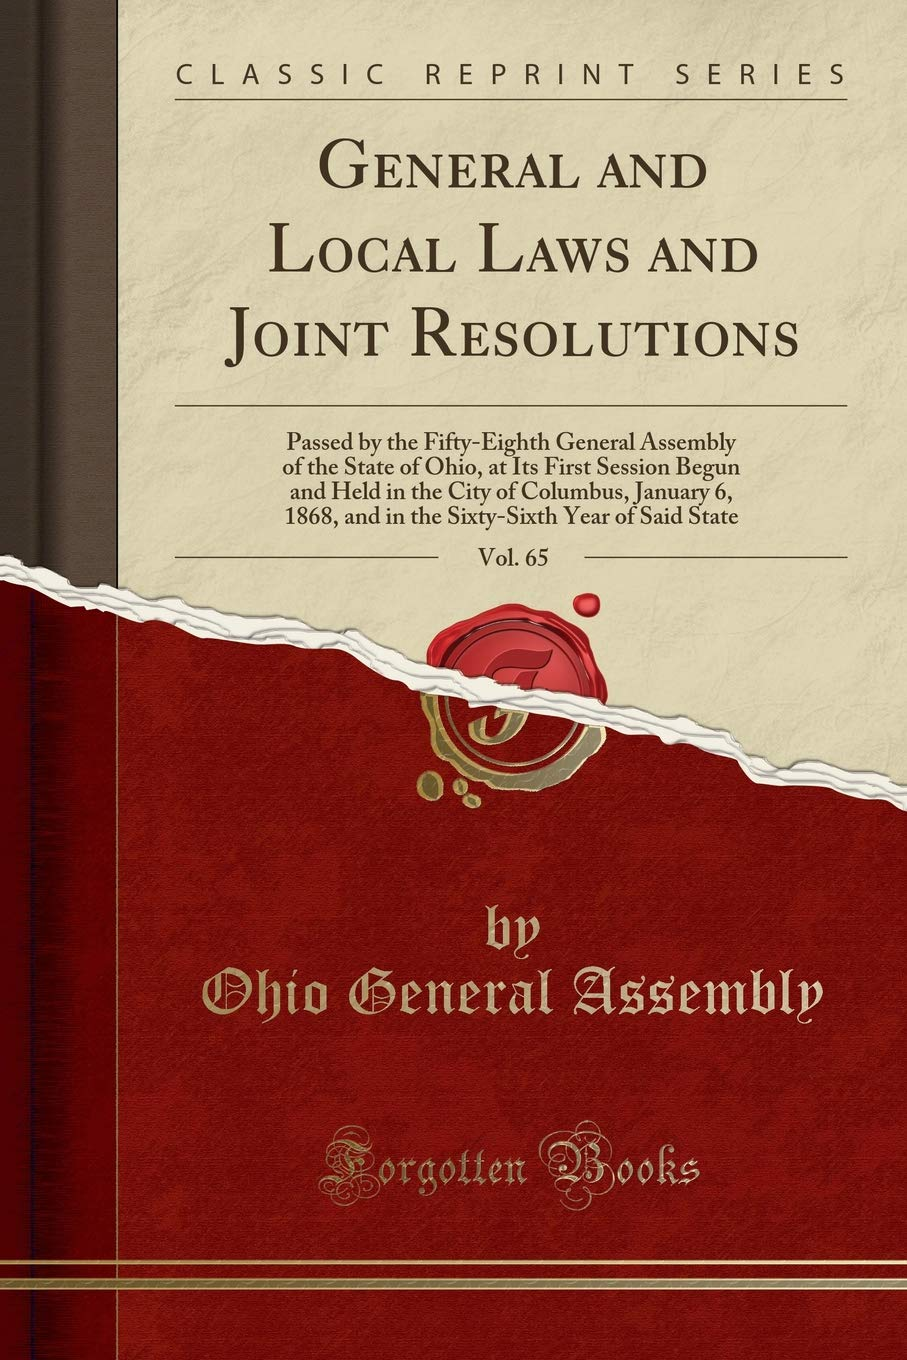 Download General and Local Laws and Joint Resolutions, Vol. 65: Passed by the Fifty-Eighth General Assembly of the State of Ohio, at Its First Session Begun ... and in the Sixty-Sixth Year of Said State ebook